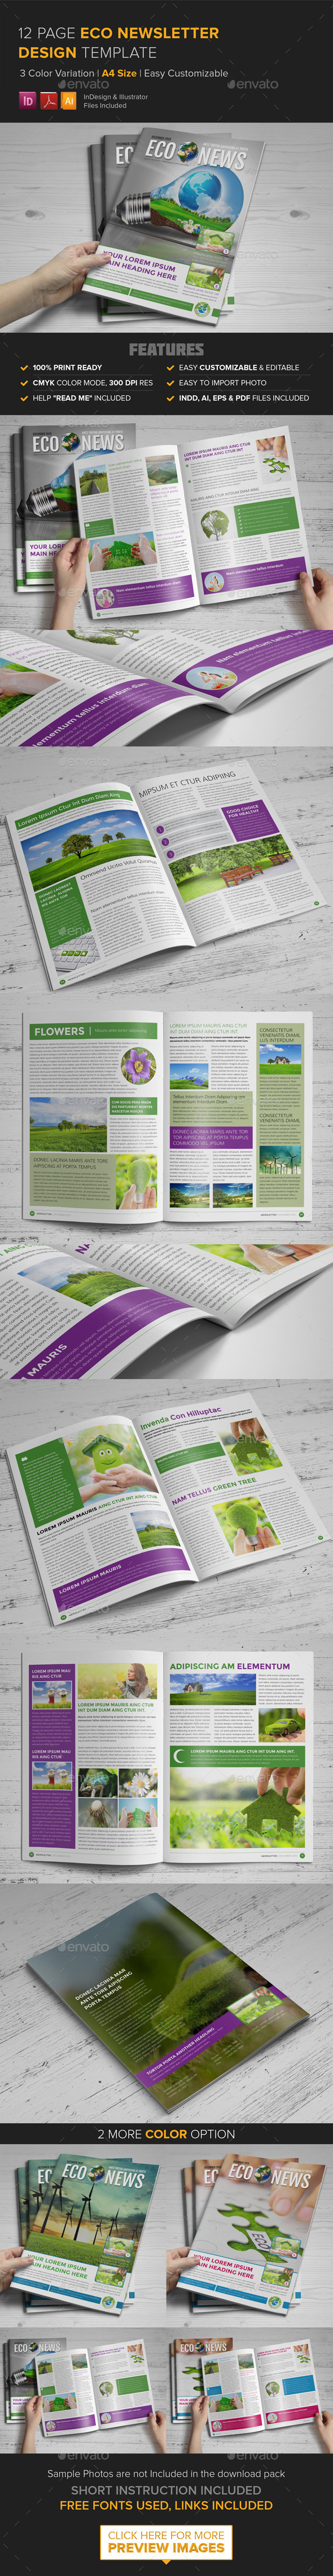 12 Page Eco Newsletter Template - InDesign - Newsletters Print Templates